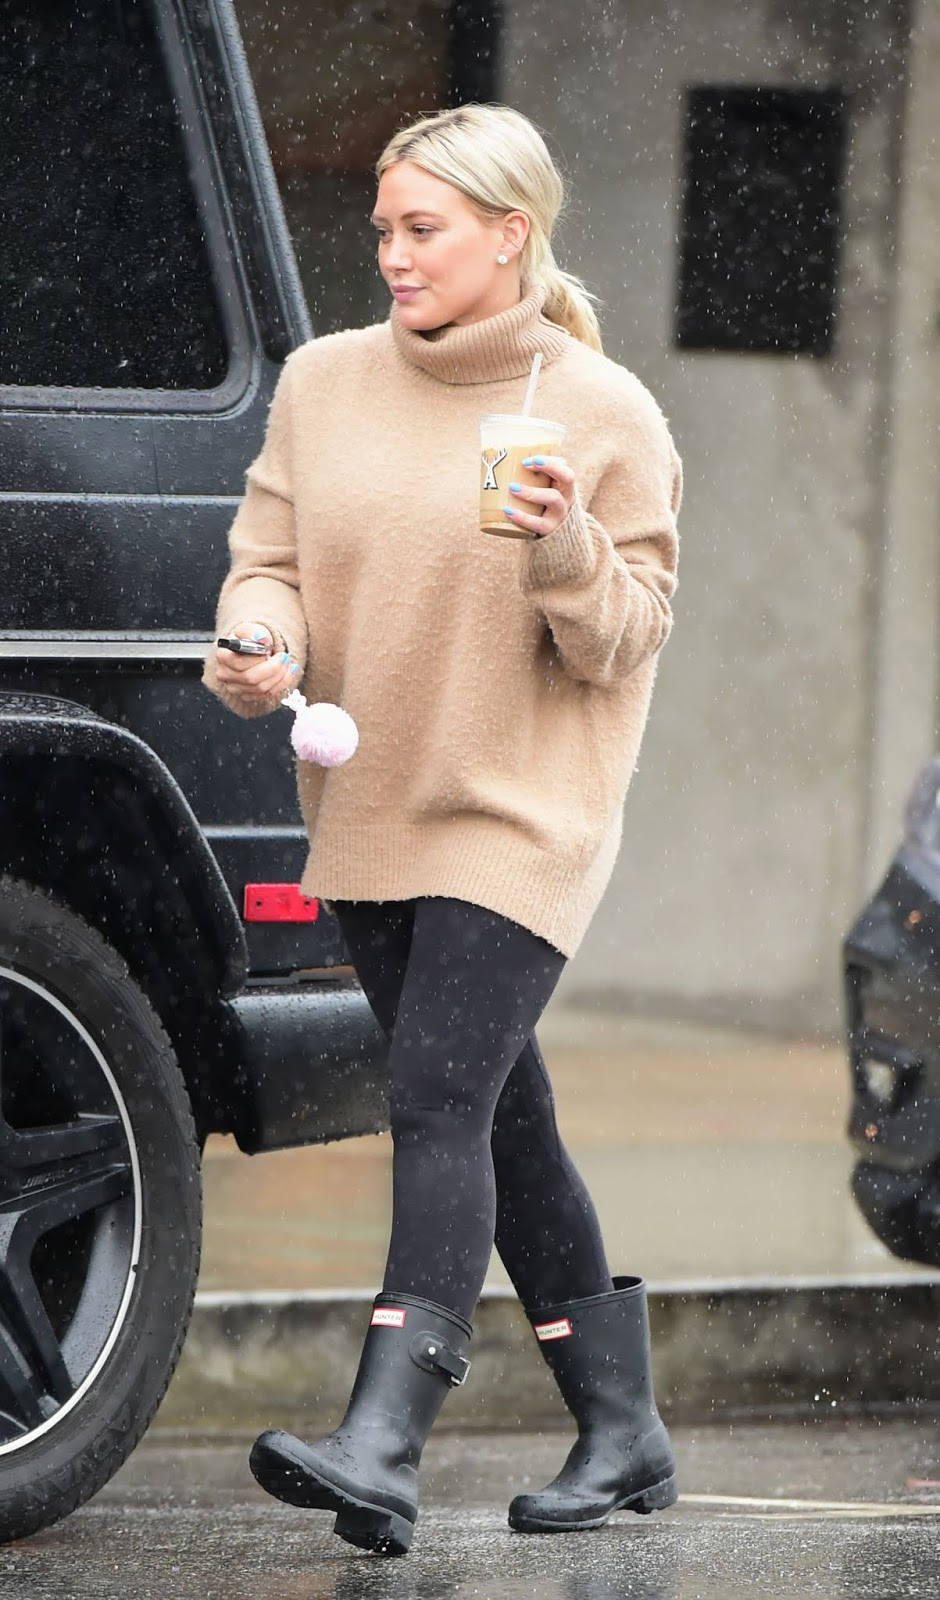 Hilary Duff out for coffee in LA - 02/02/2019